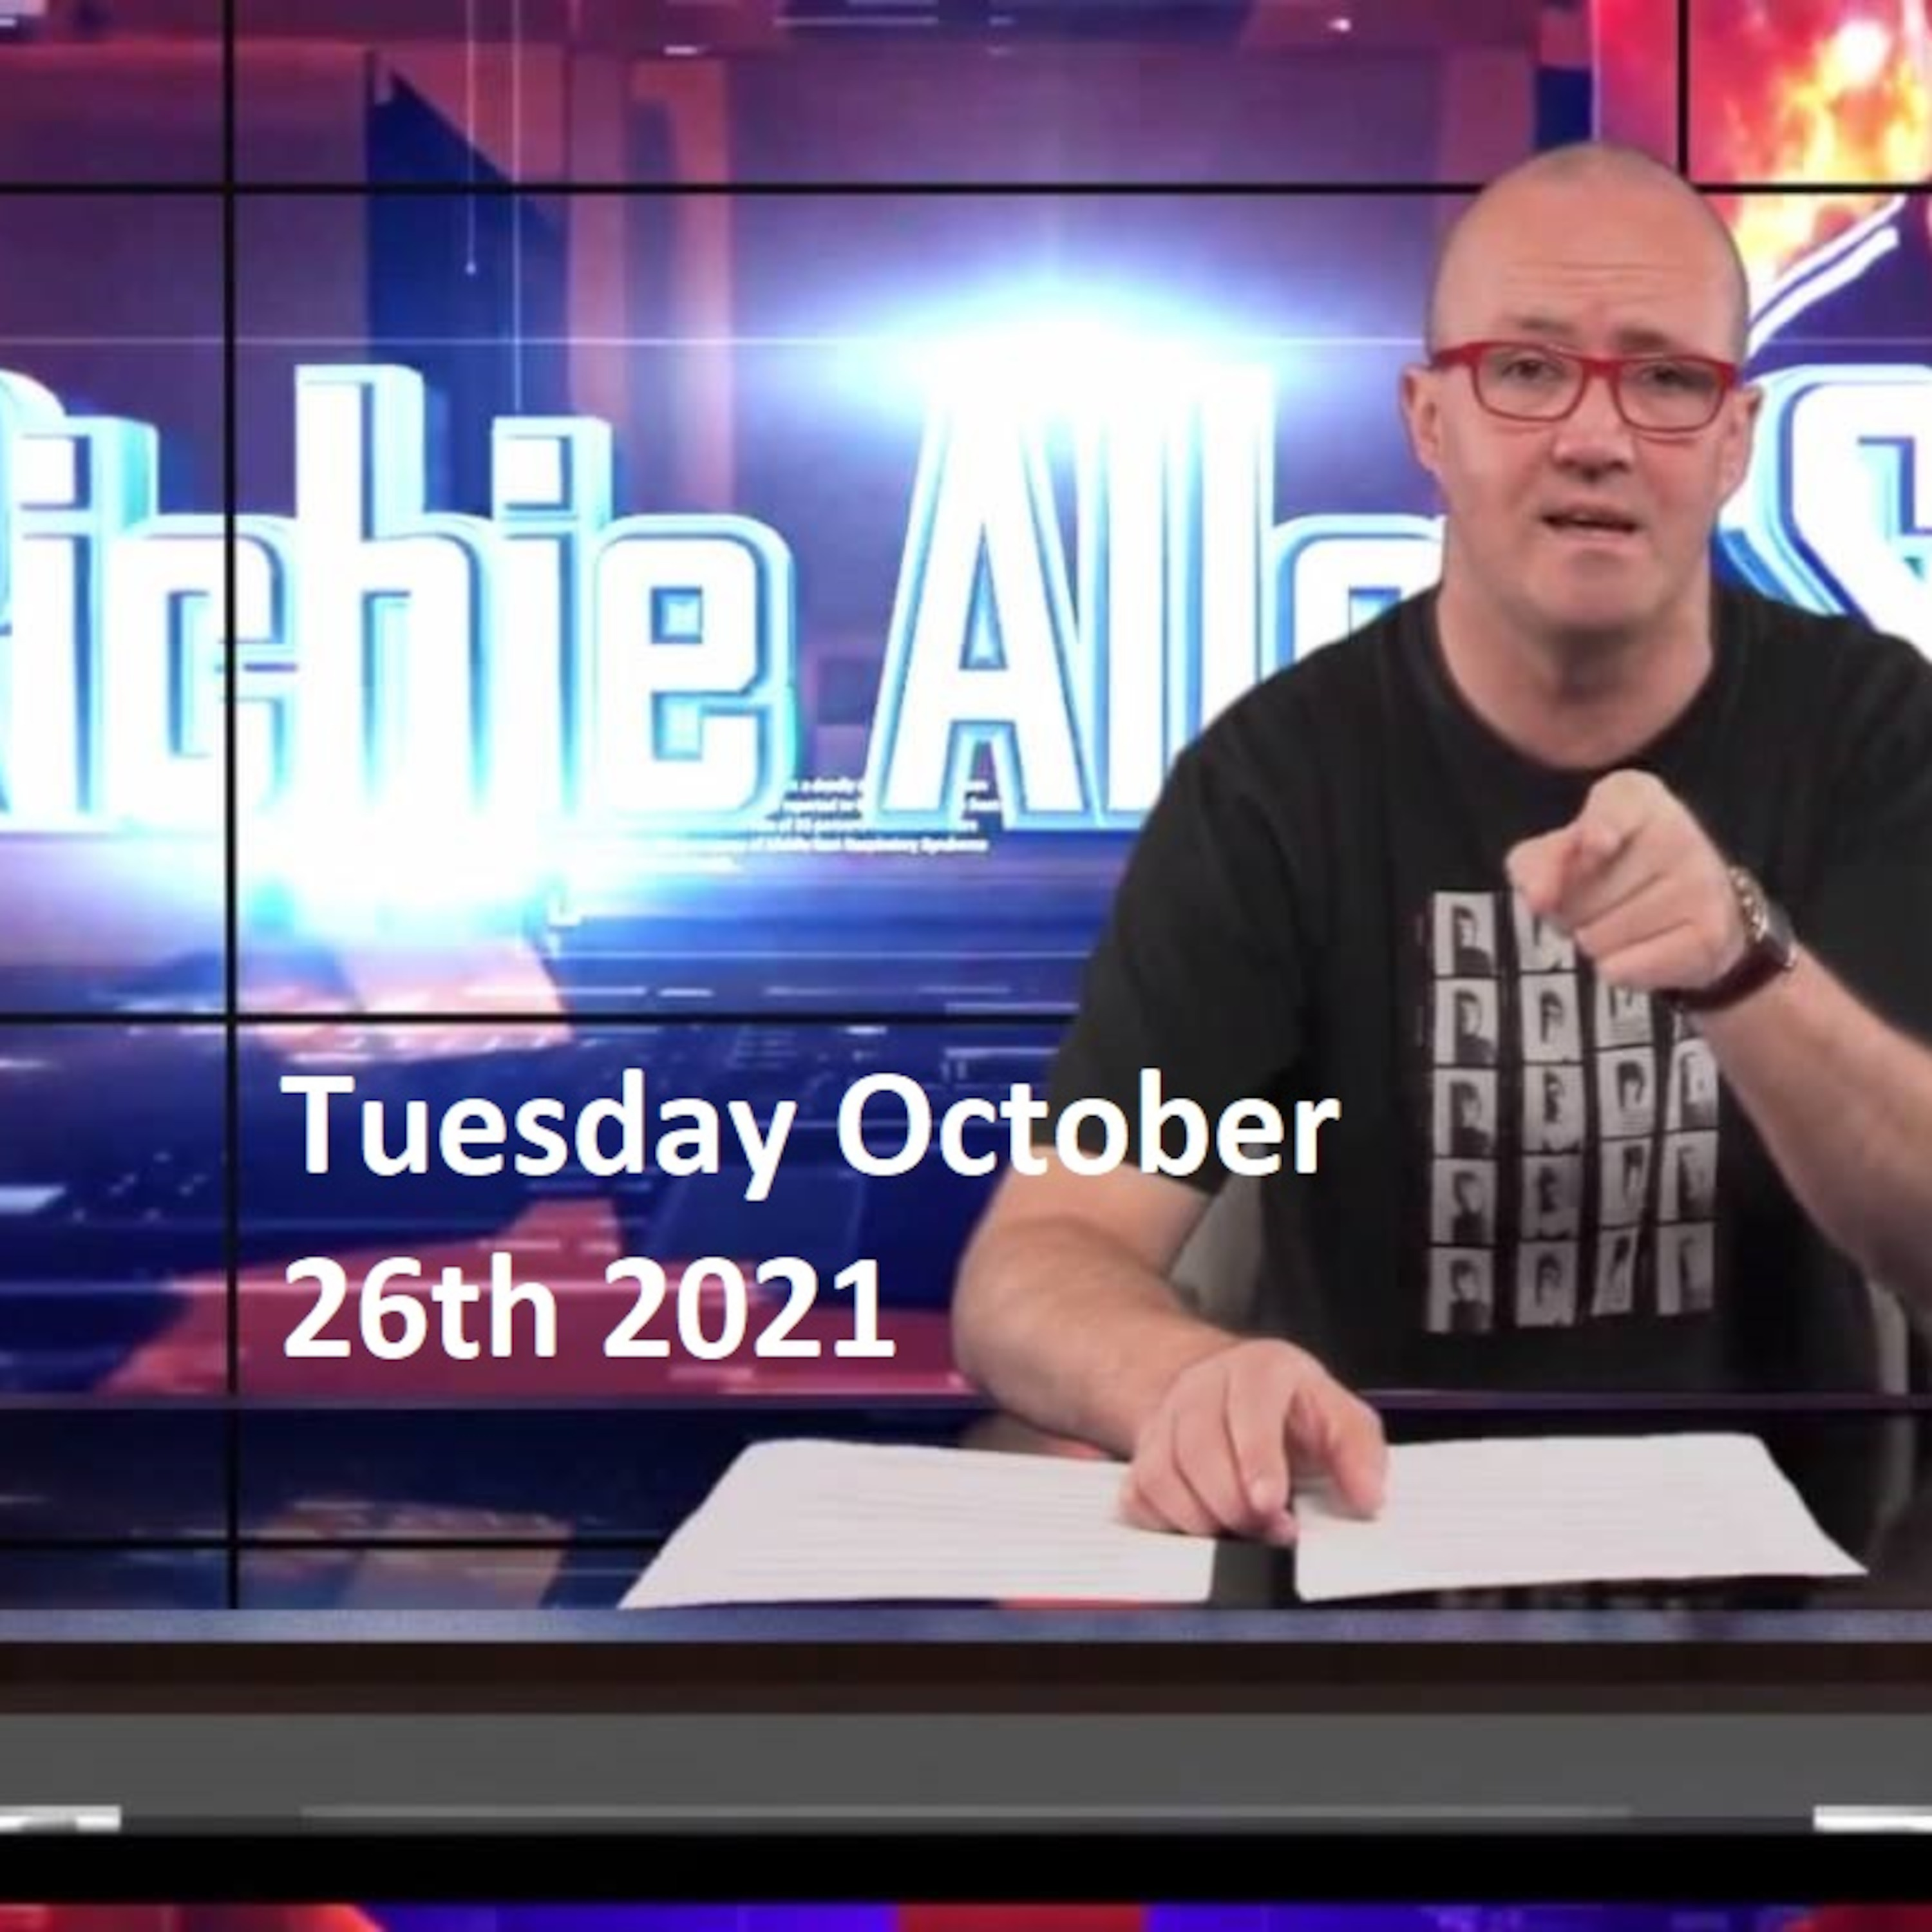 Episode 1354: The Richie Allen Show Tuesday October 26th 2021